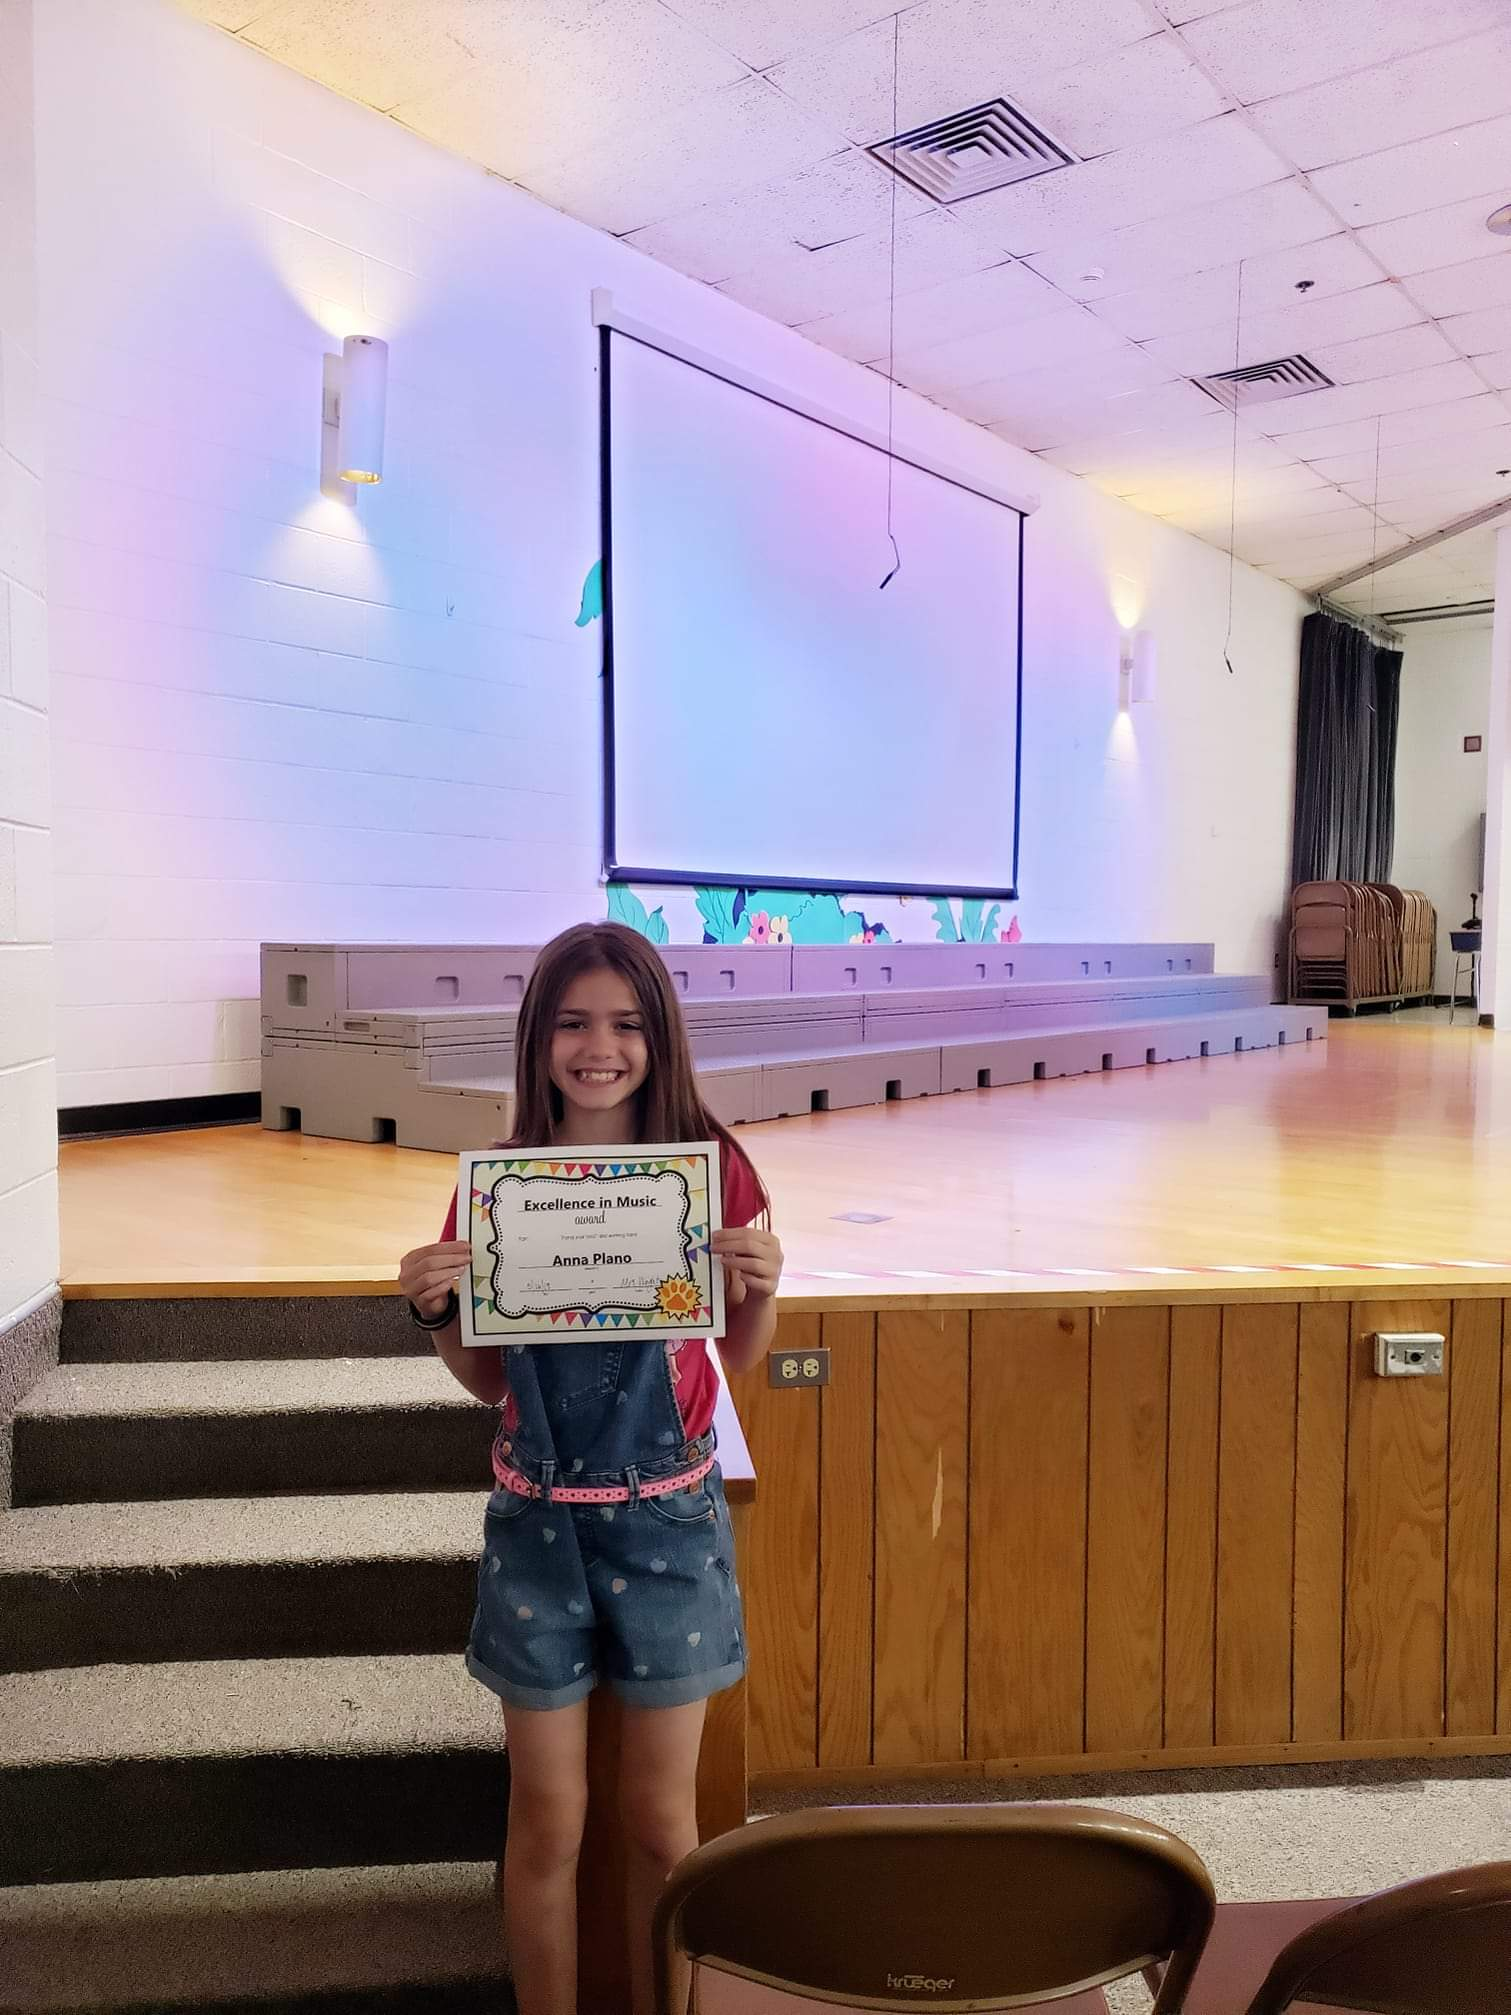 """ANNA PLANO RECEIVED THE """"EXCELLENCE IN MUSIC"""" AWARD AT LAKEVIEW ELEMENTARY SCHOOL, BLOOMINGTON IN!"""